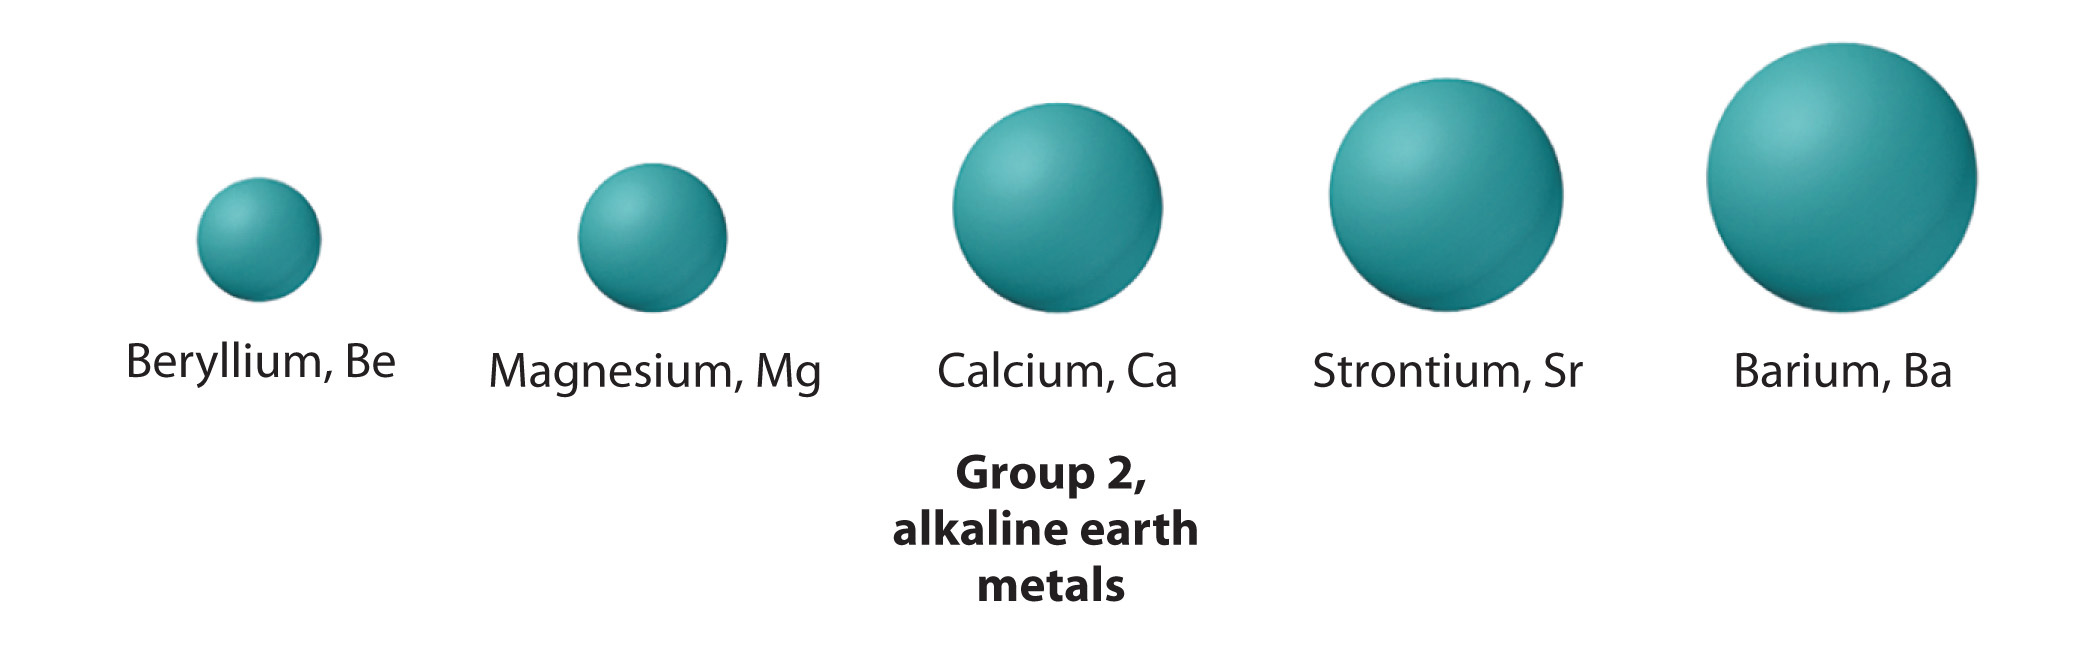 alkaline earths Alkaline earth metals can be found running through your blood and in nuclear fallout this lesson will examine properties they share and look.